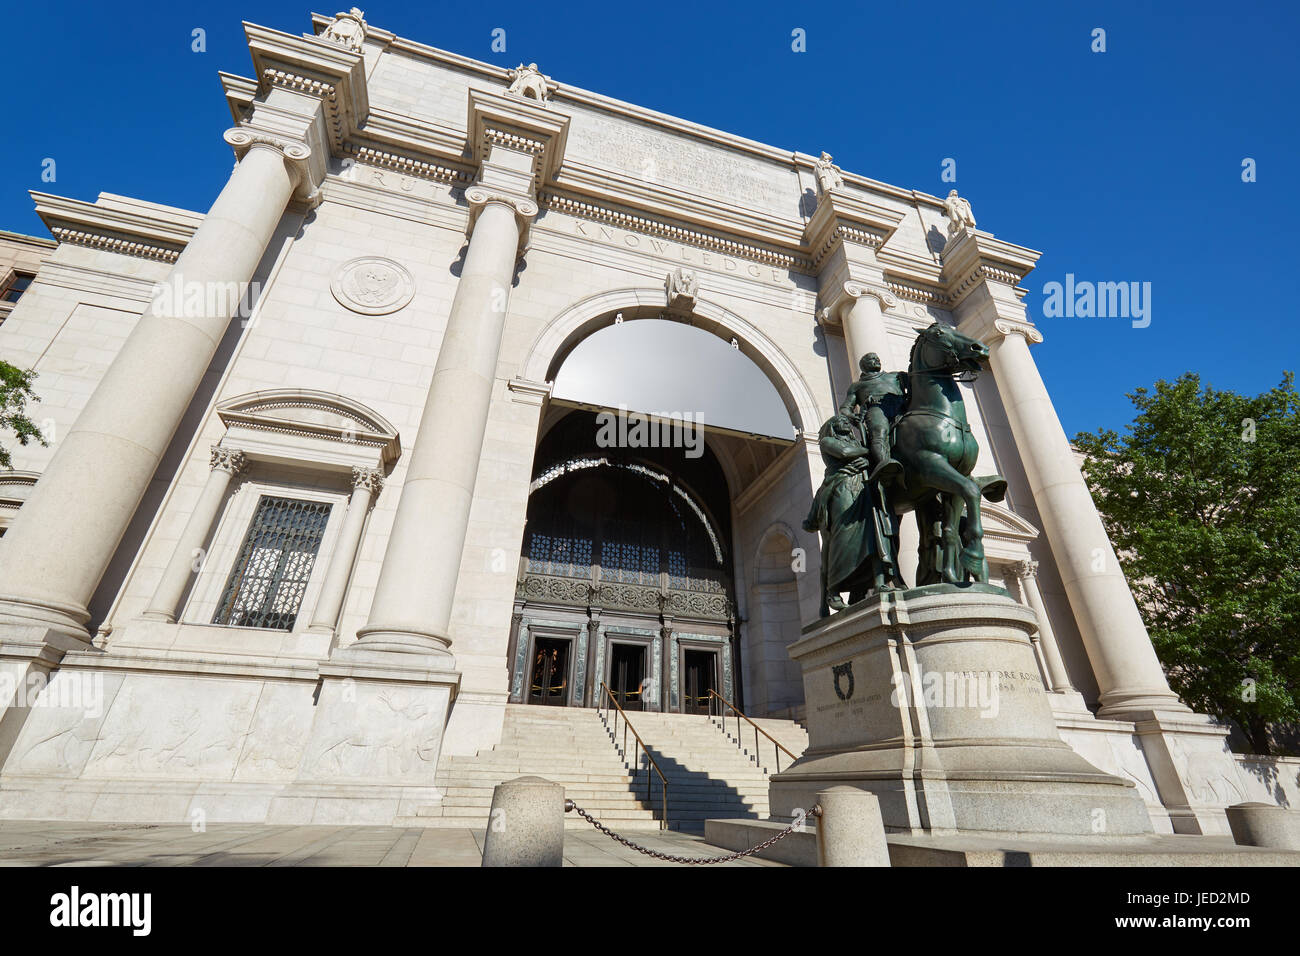 American Museum of Natural History building facade in a sunny day, blue sky in New York - Stock Image